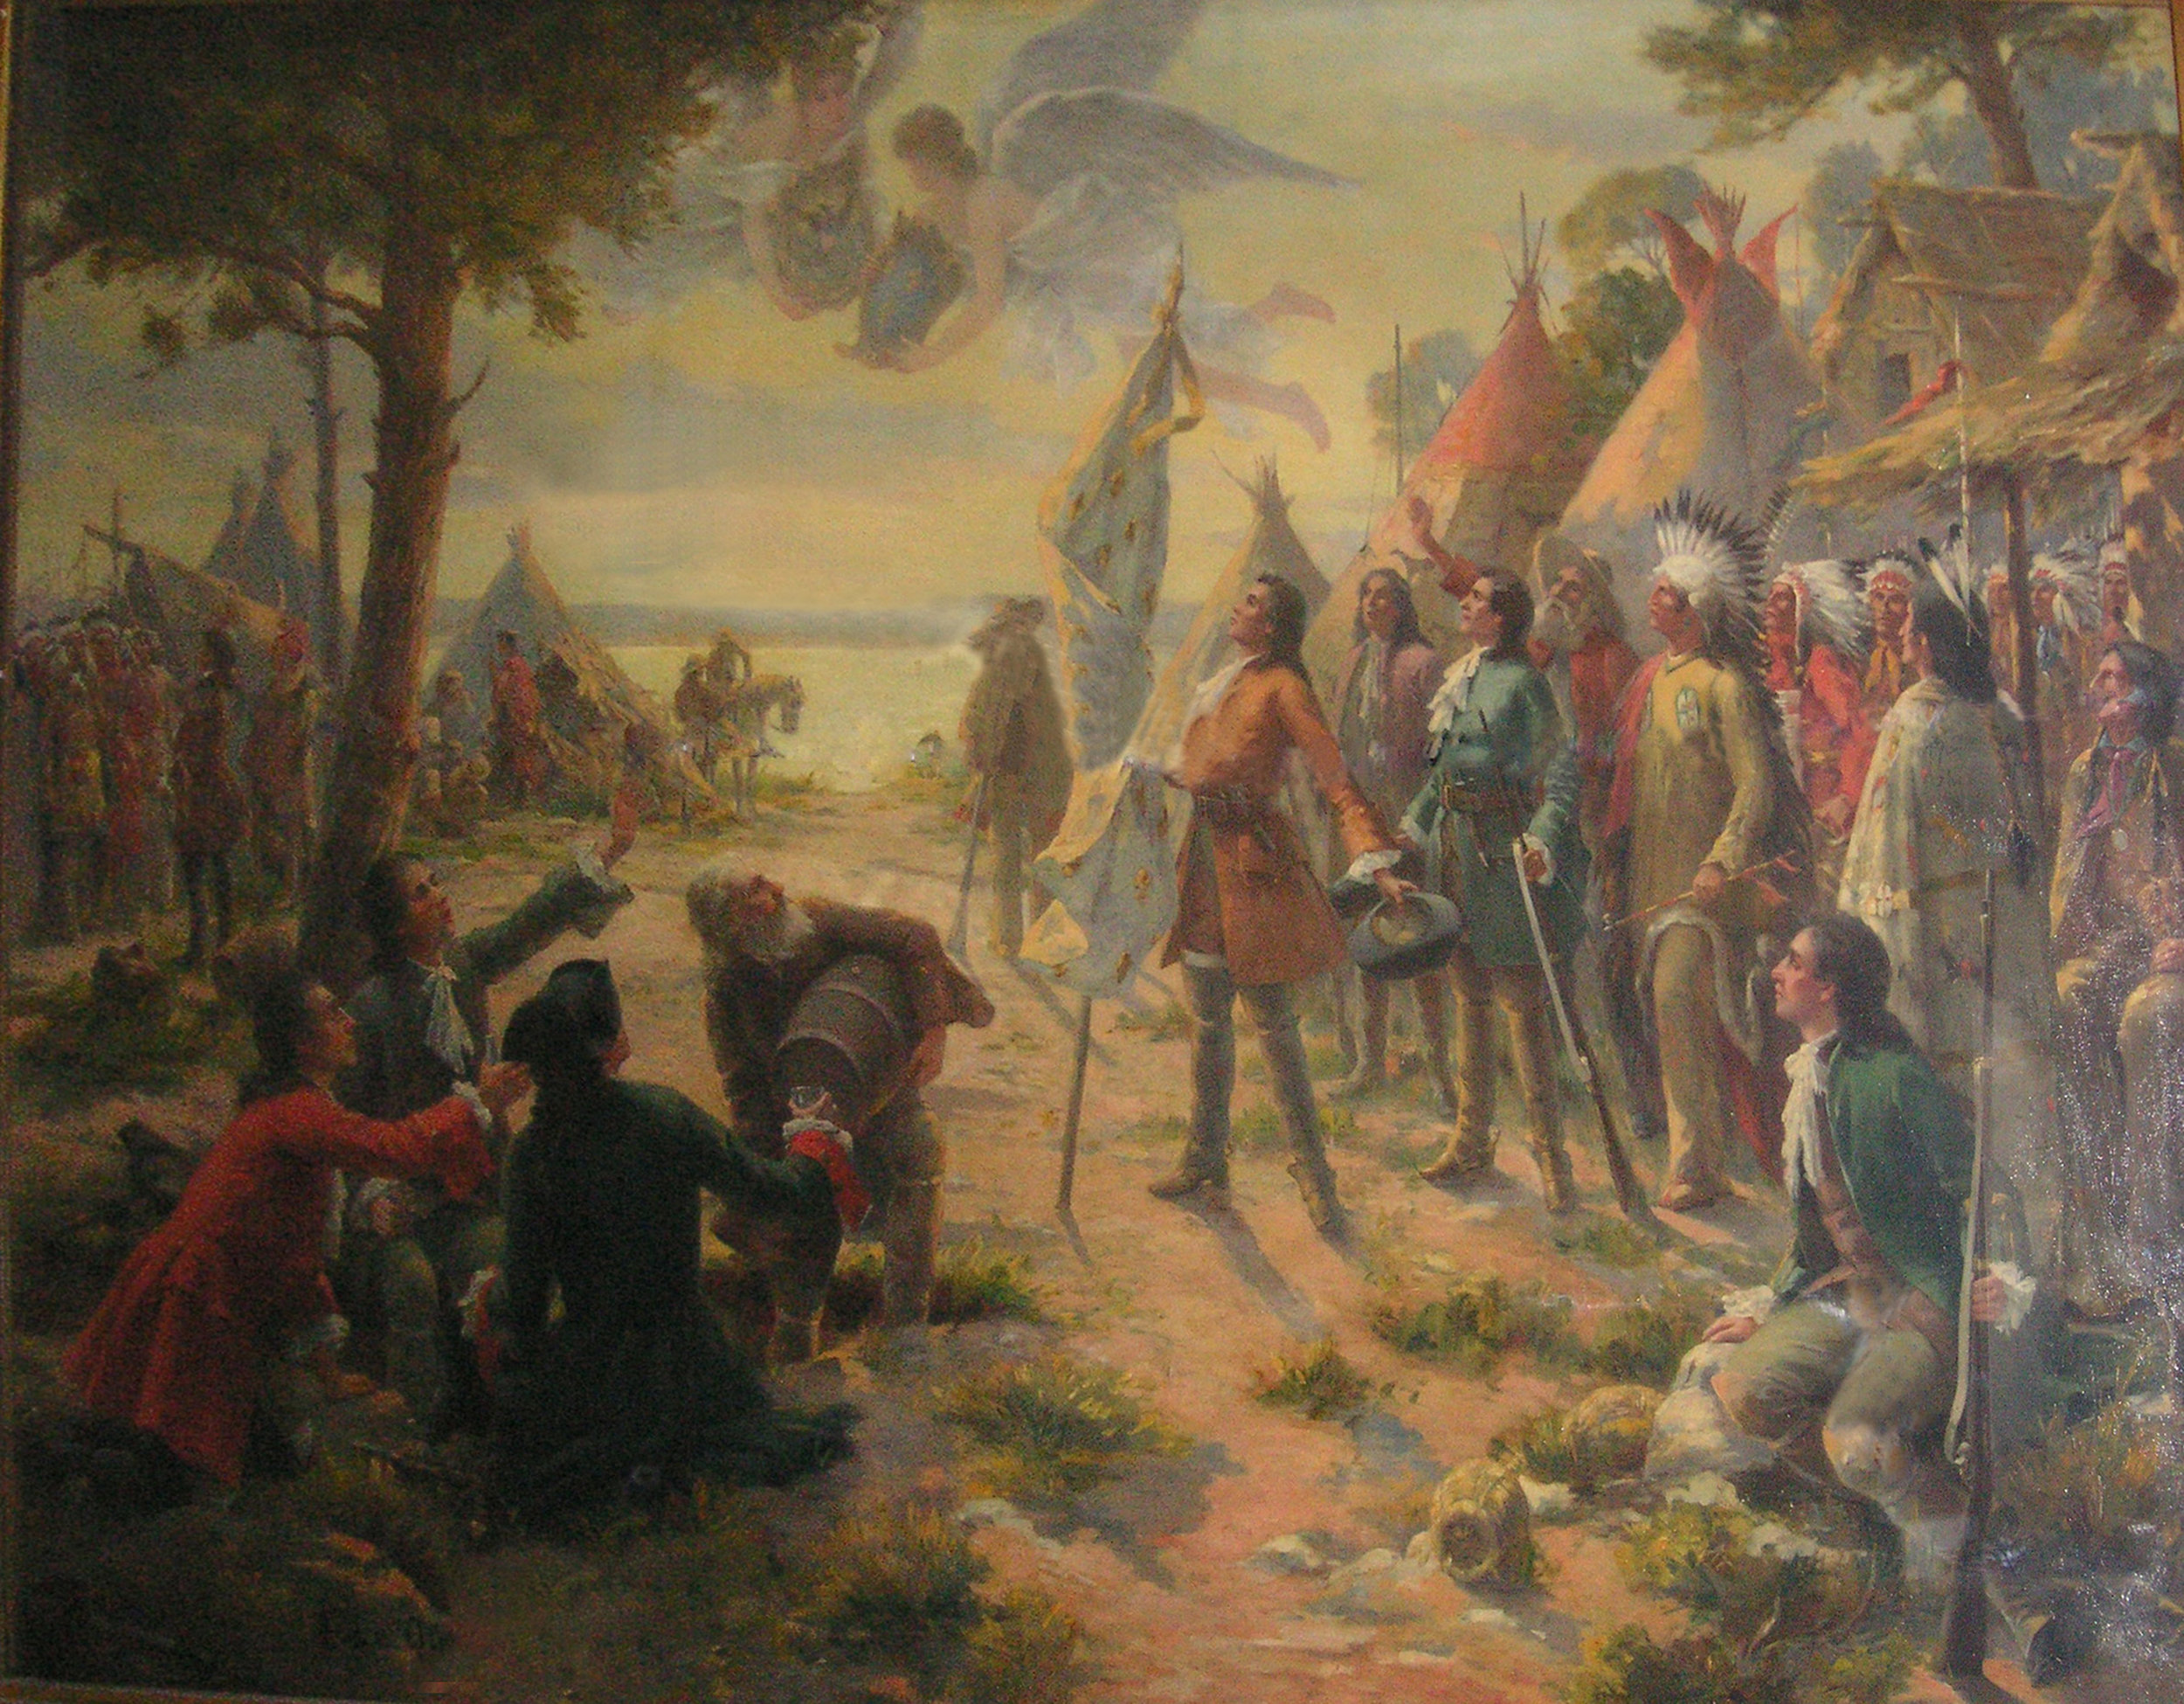 The Founding of Saint Louis  . Painting by Fernand LeQuesne, ca. 1880-1895.